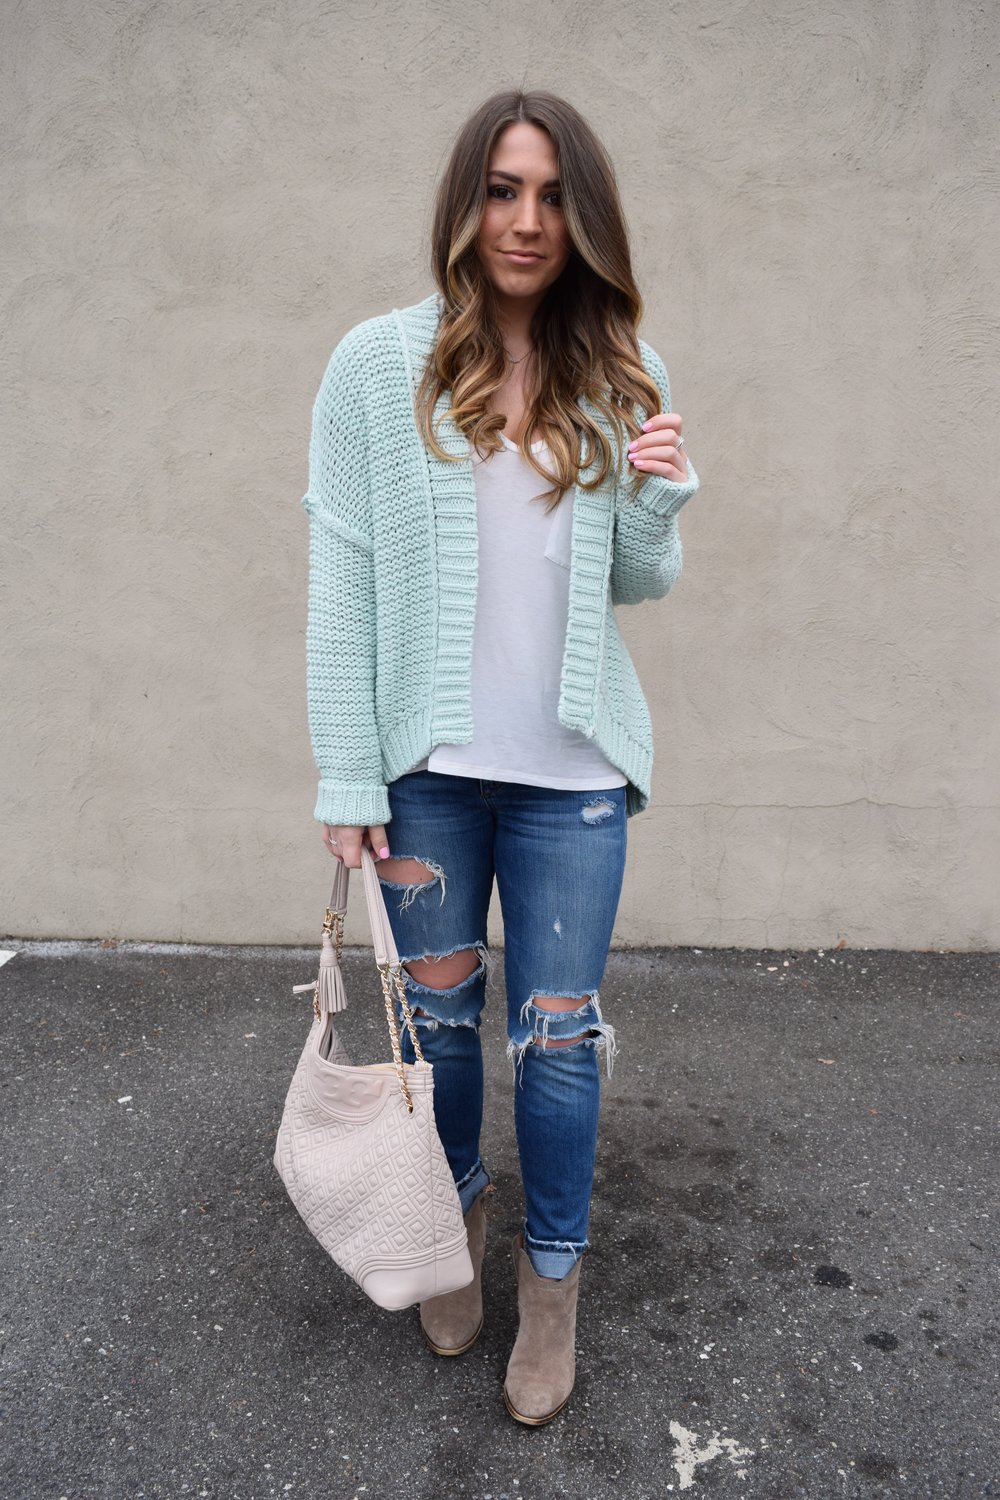 anthropologie mint cardigan, joe's jeans, tory burch bag, lucky brand booties, spring transition outfit